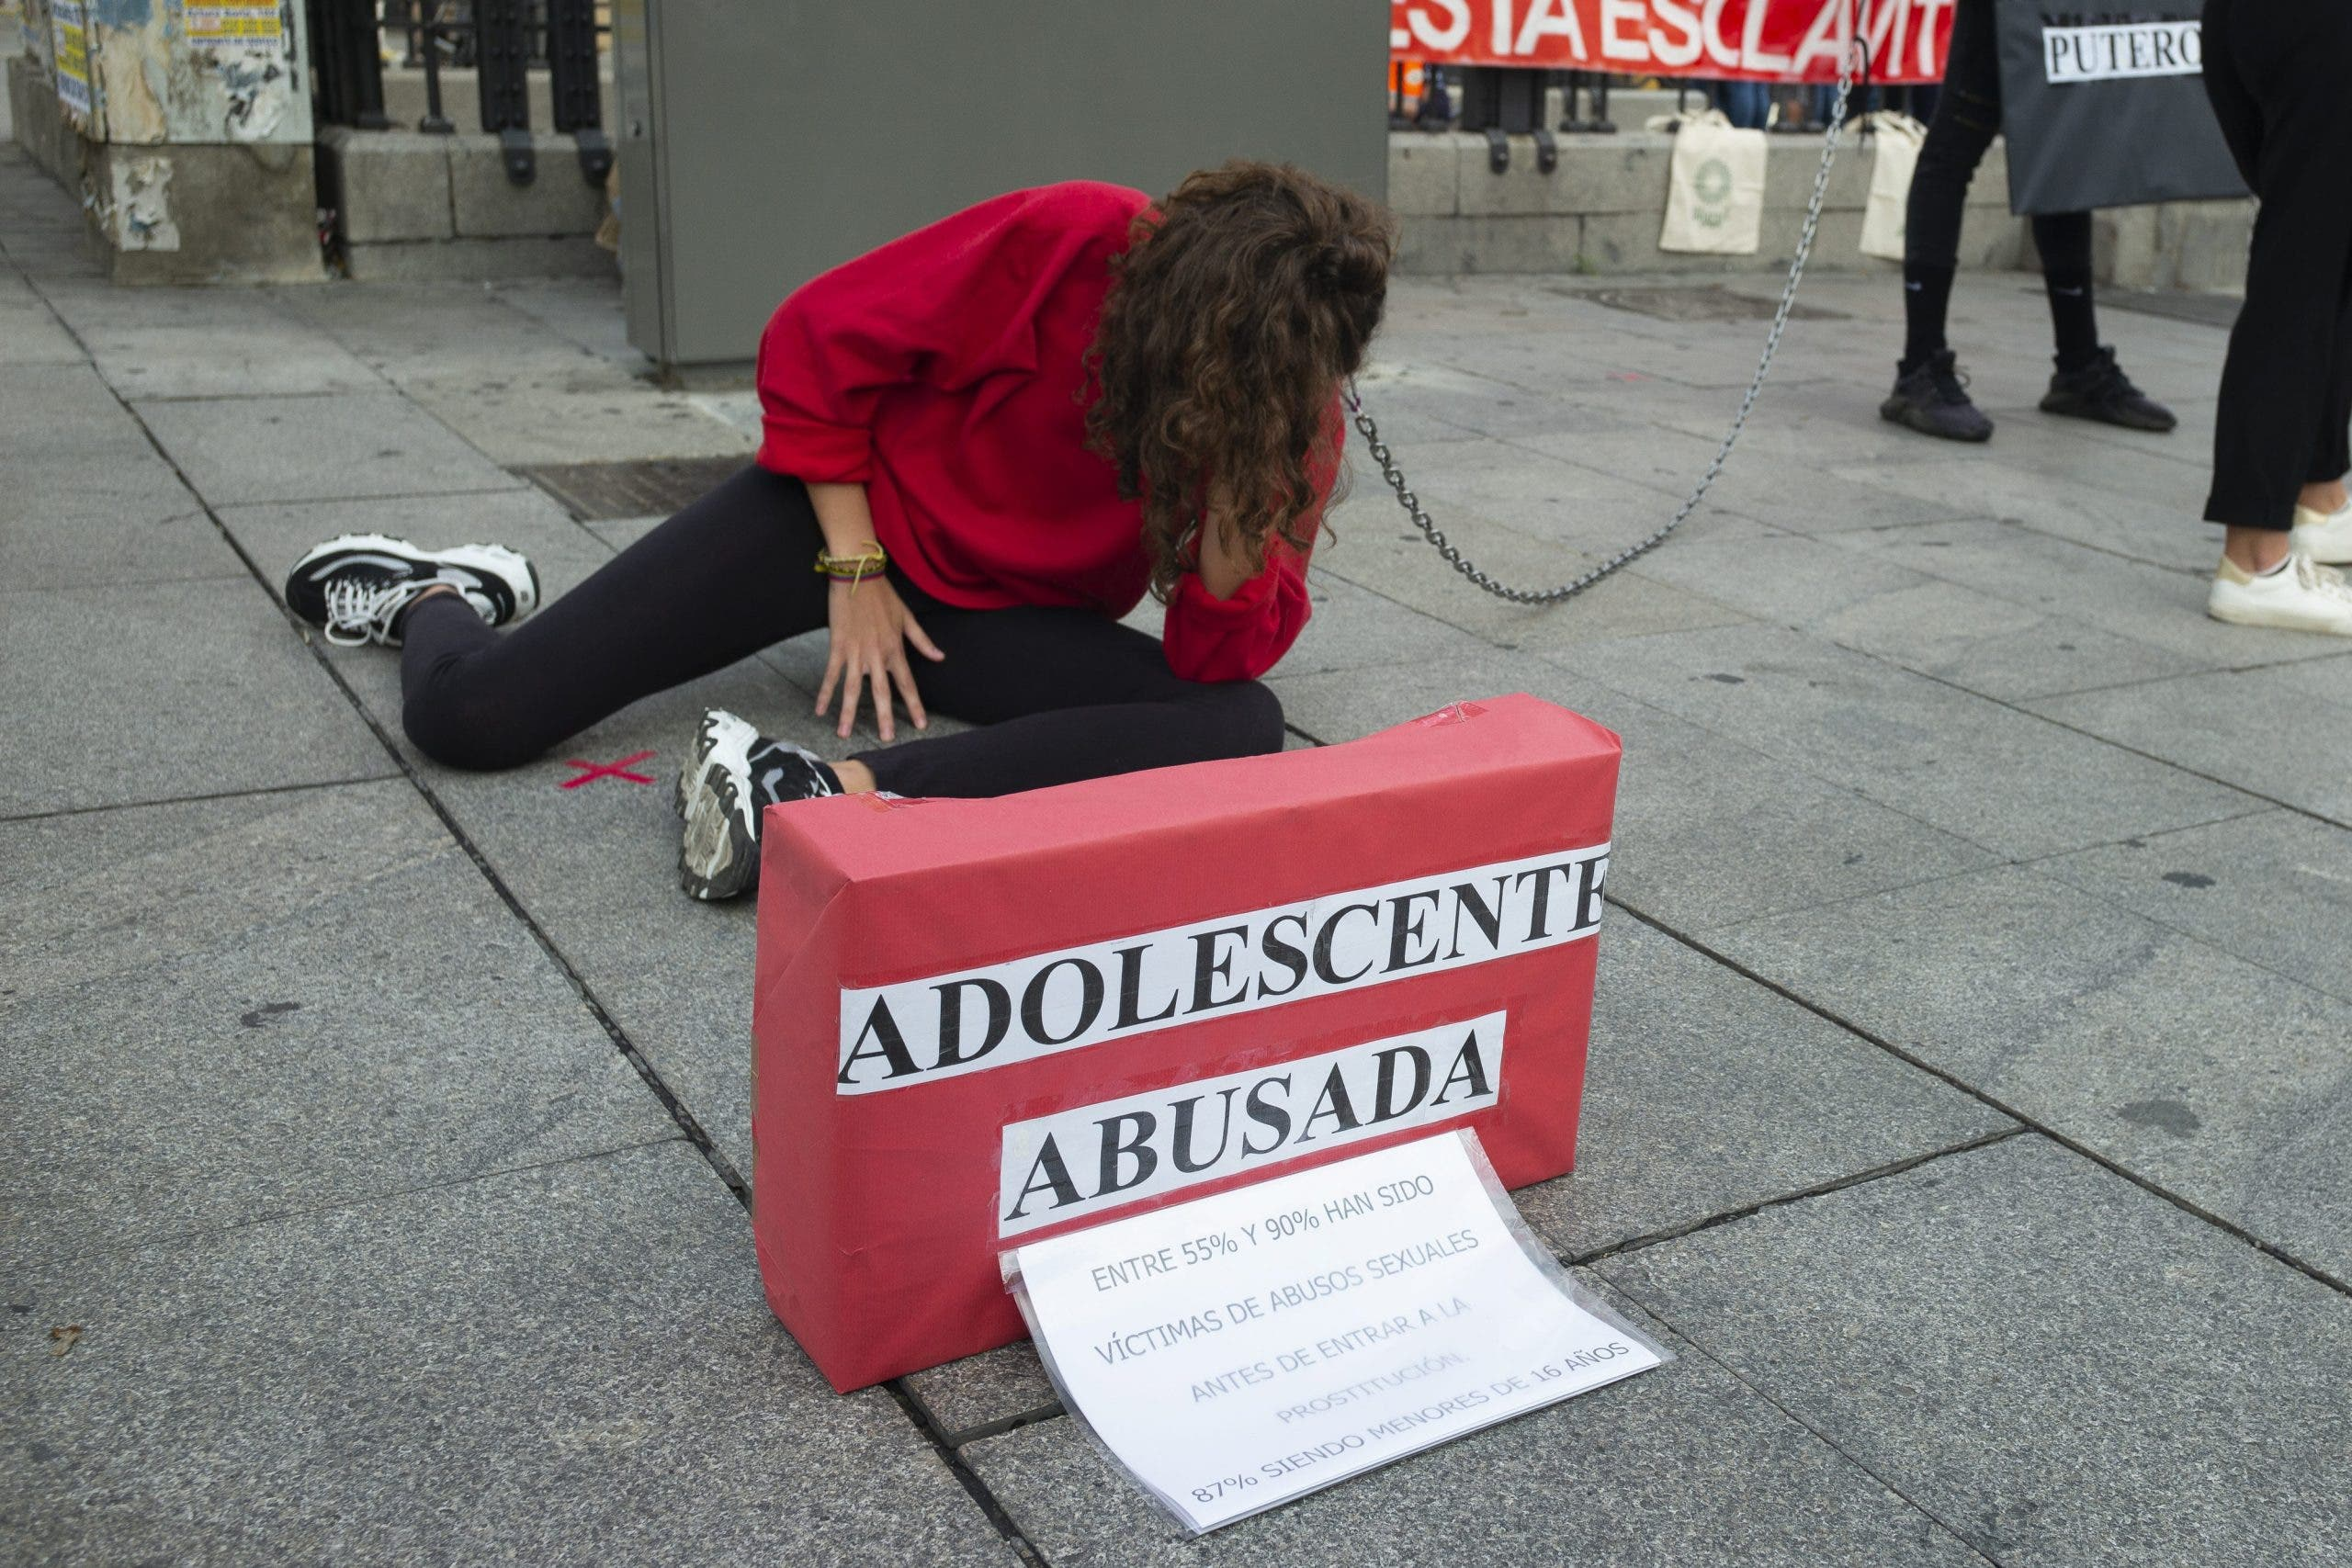 A recent protest calling for the abolition of prostitution